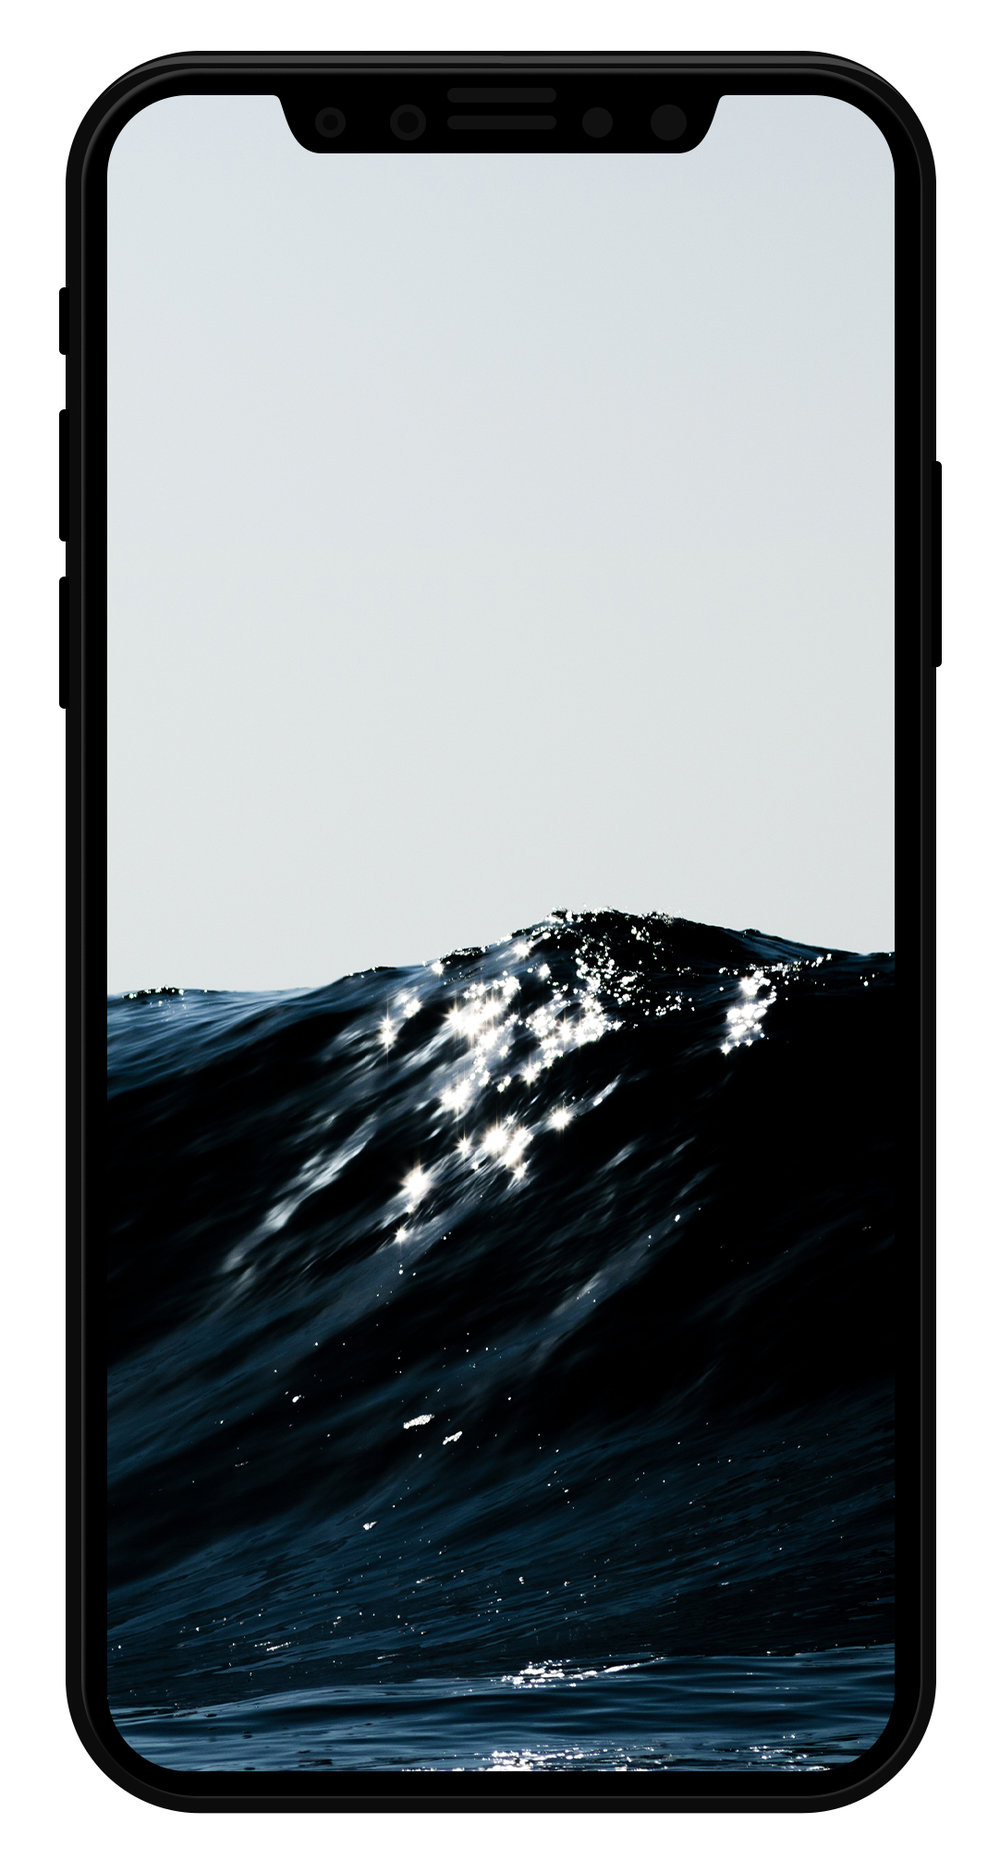 iphone-8-mockcdrup-downloadable.jpg